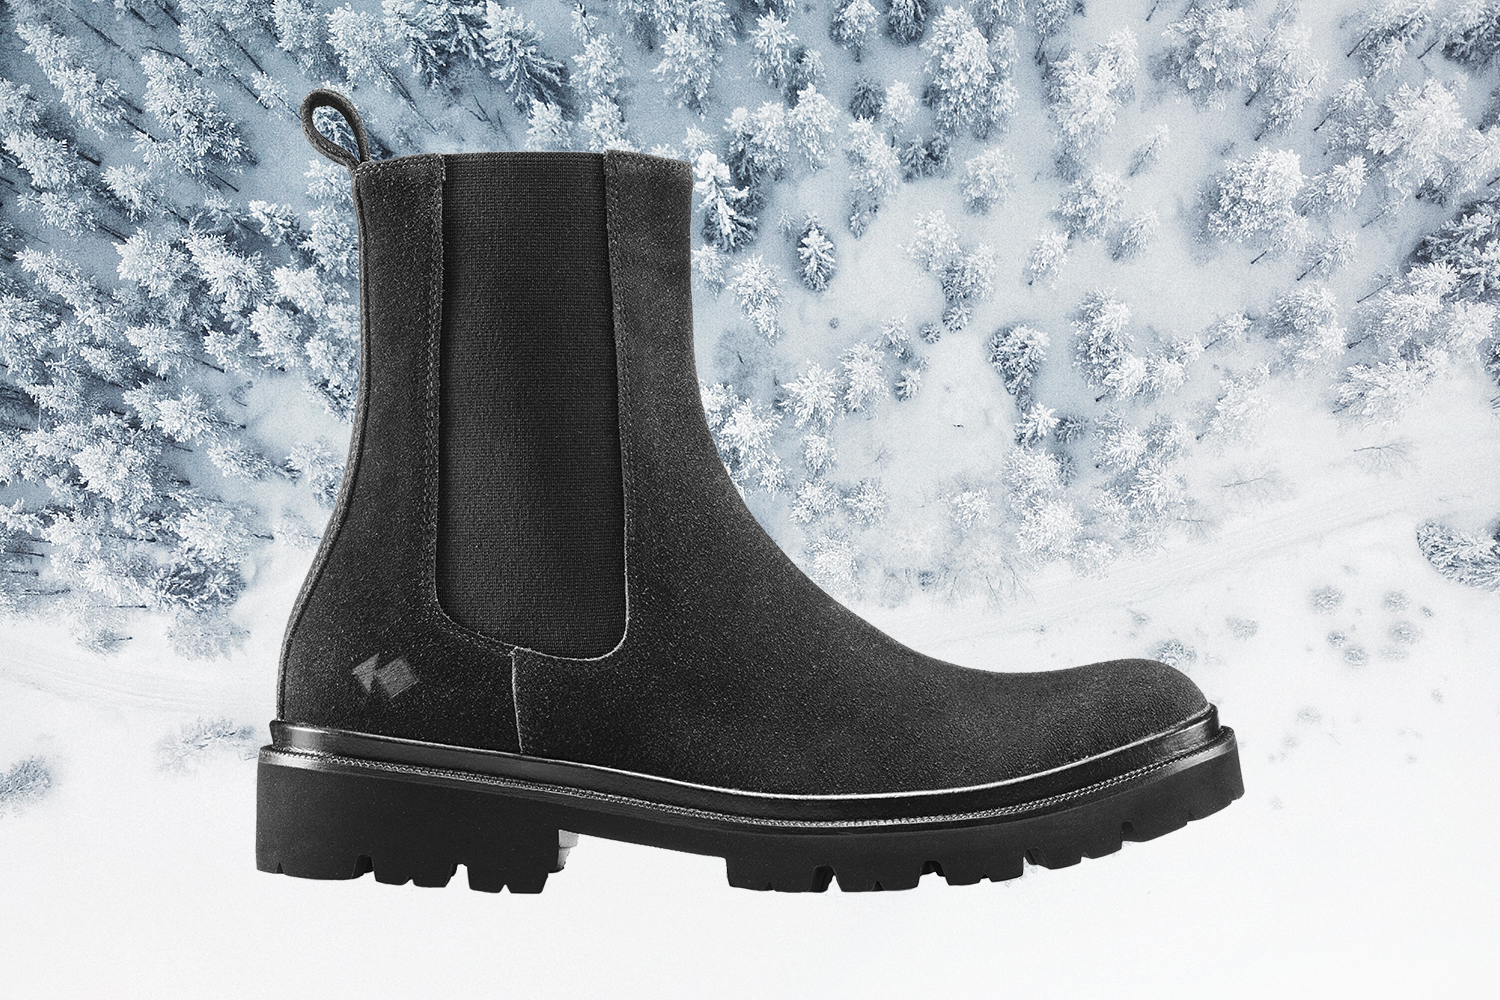 Koio Men's Chelsea Boots for Winter